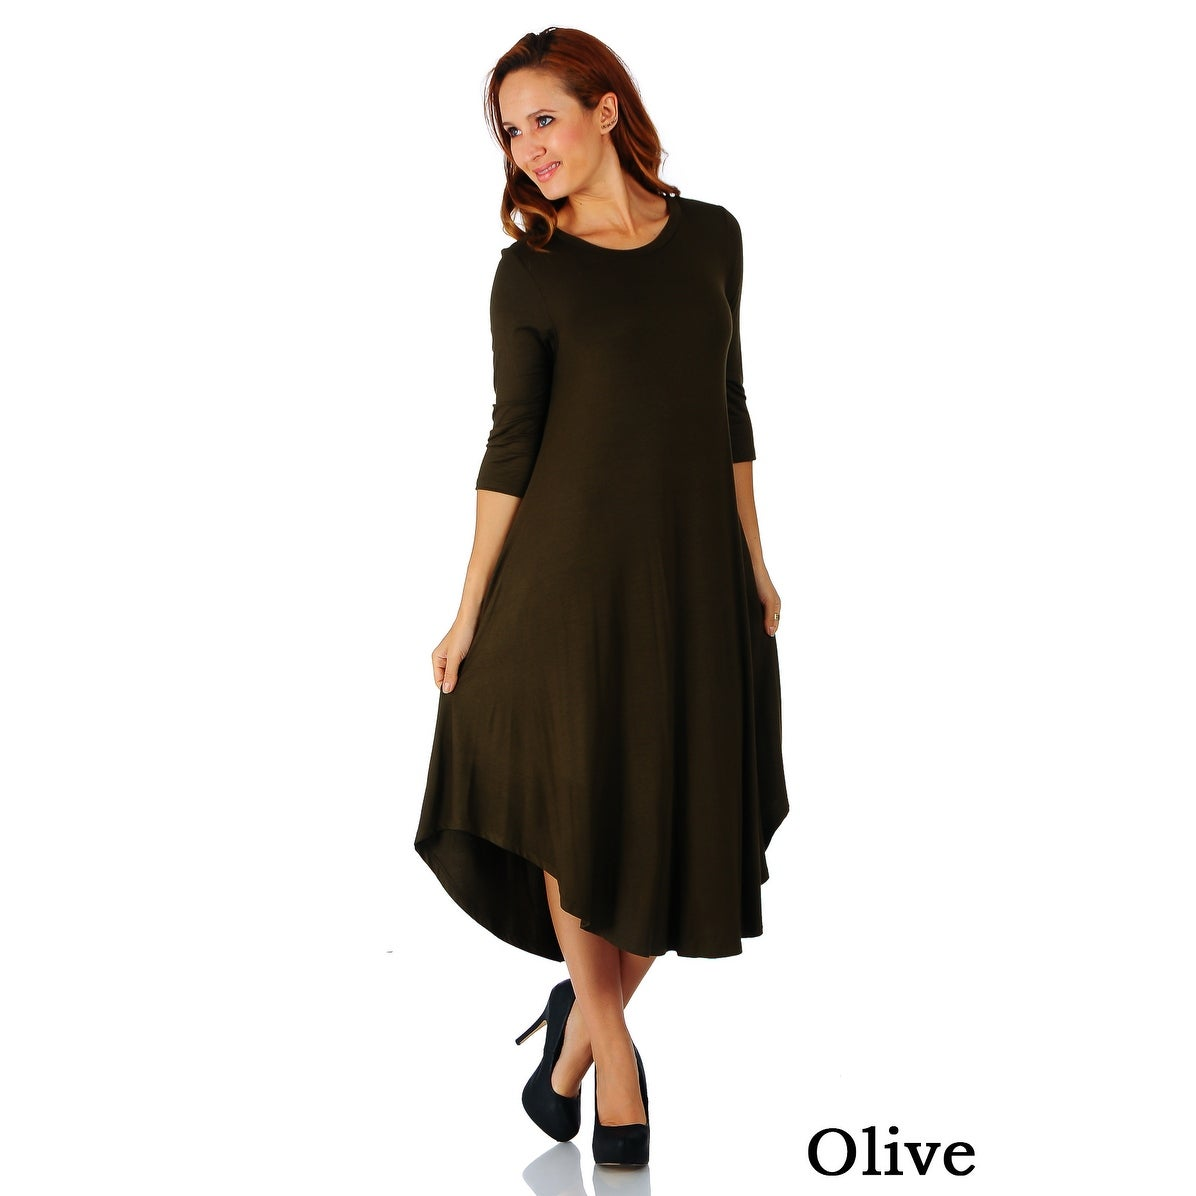 d7e9b5d151b Shop Simply Ravishing 3 4 Sleeve Rounded Hem Mid-Length Maxi Dress (Size   S-5X) - Free Shipping On Orders Over  45 - Overstock - 18155132